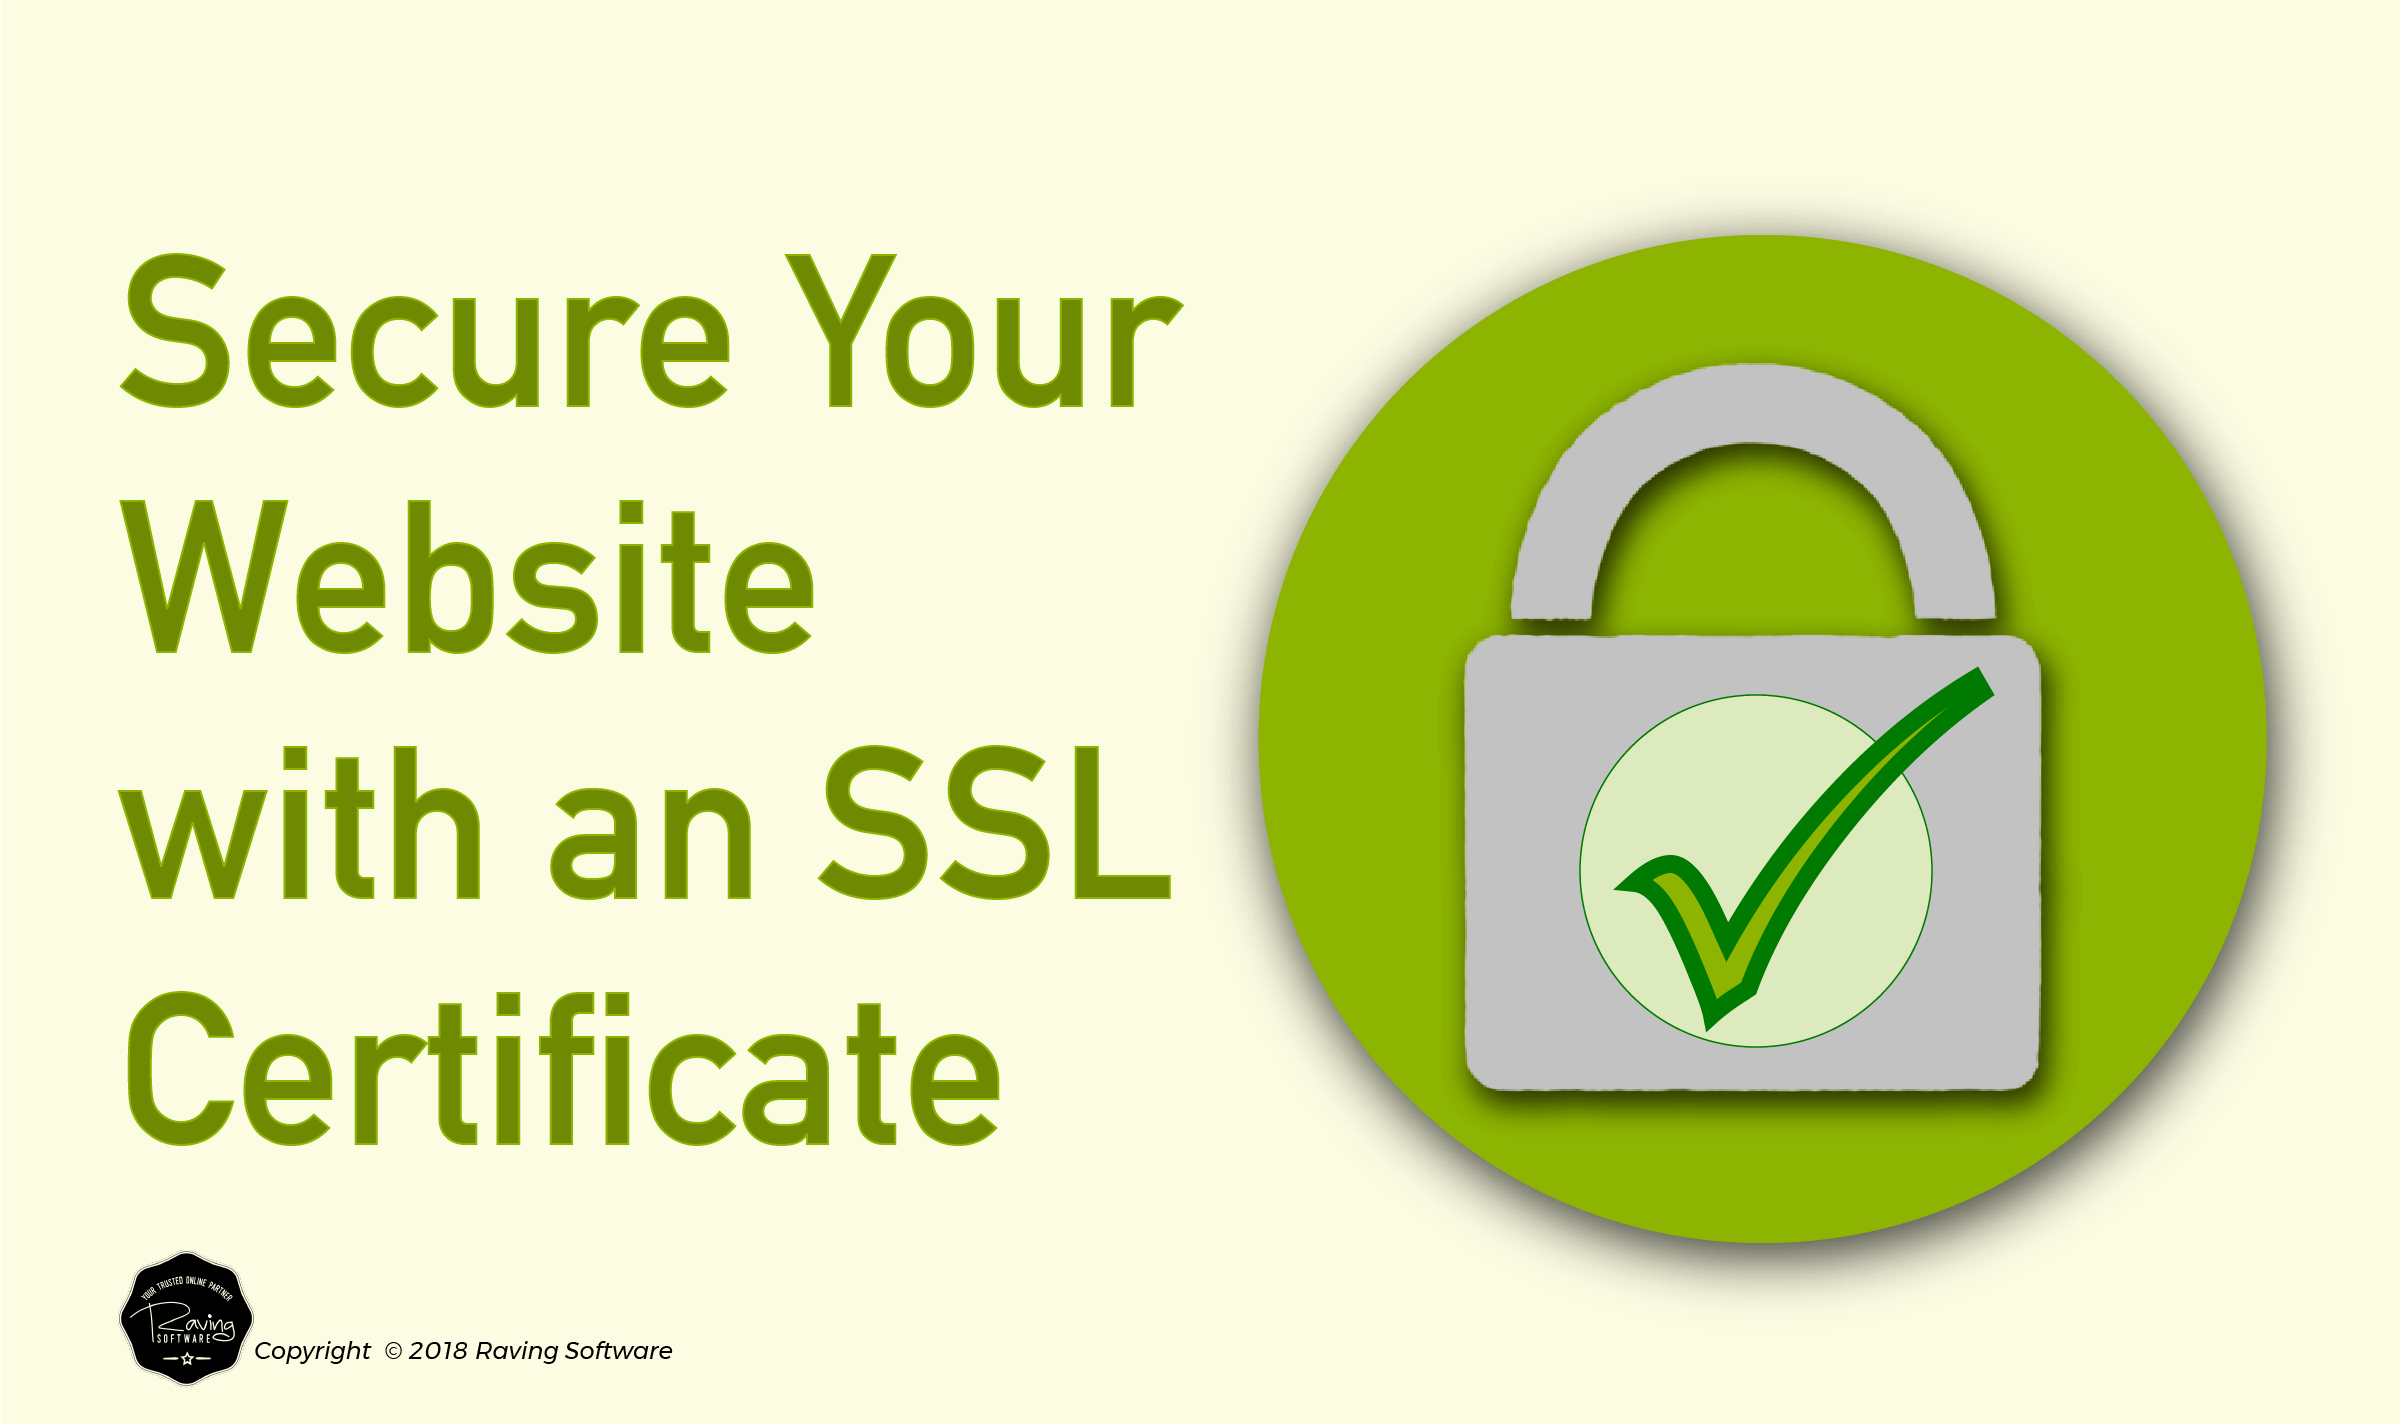 You need an SSL Certificate for you website